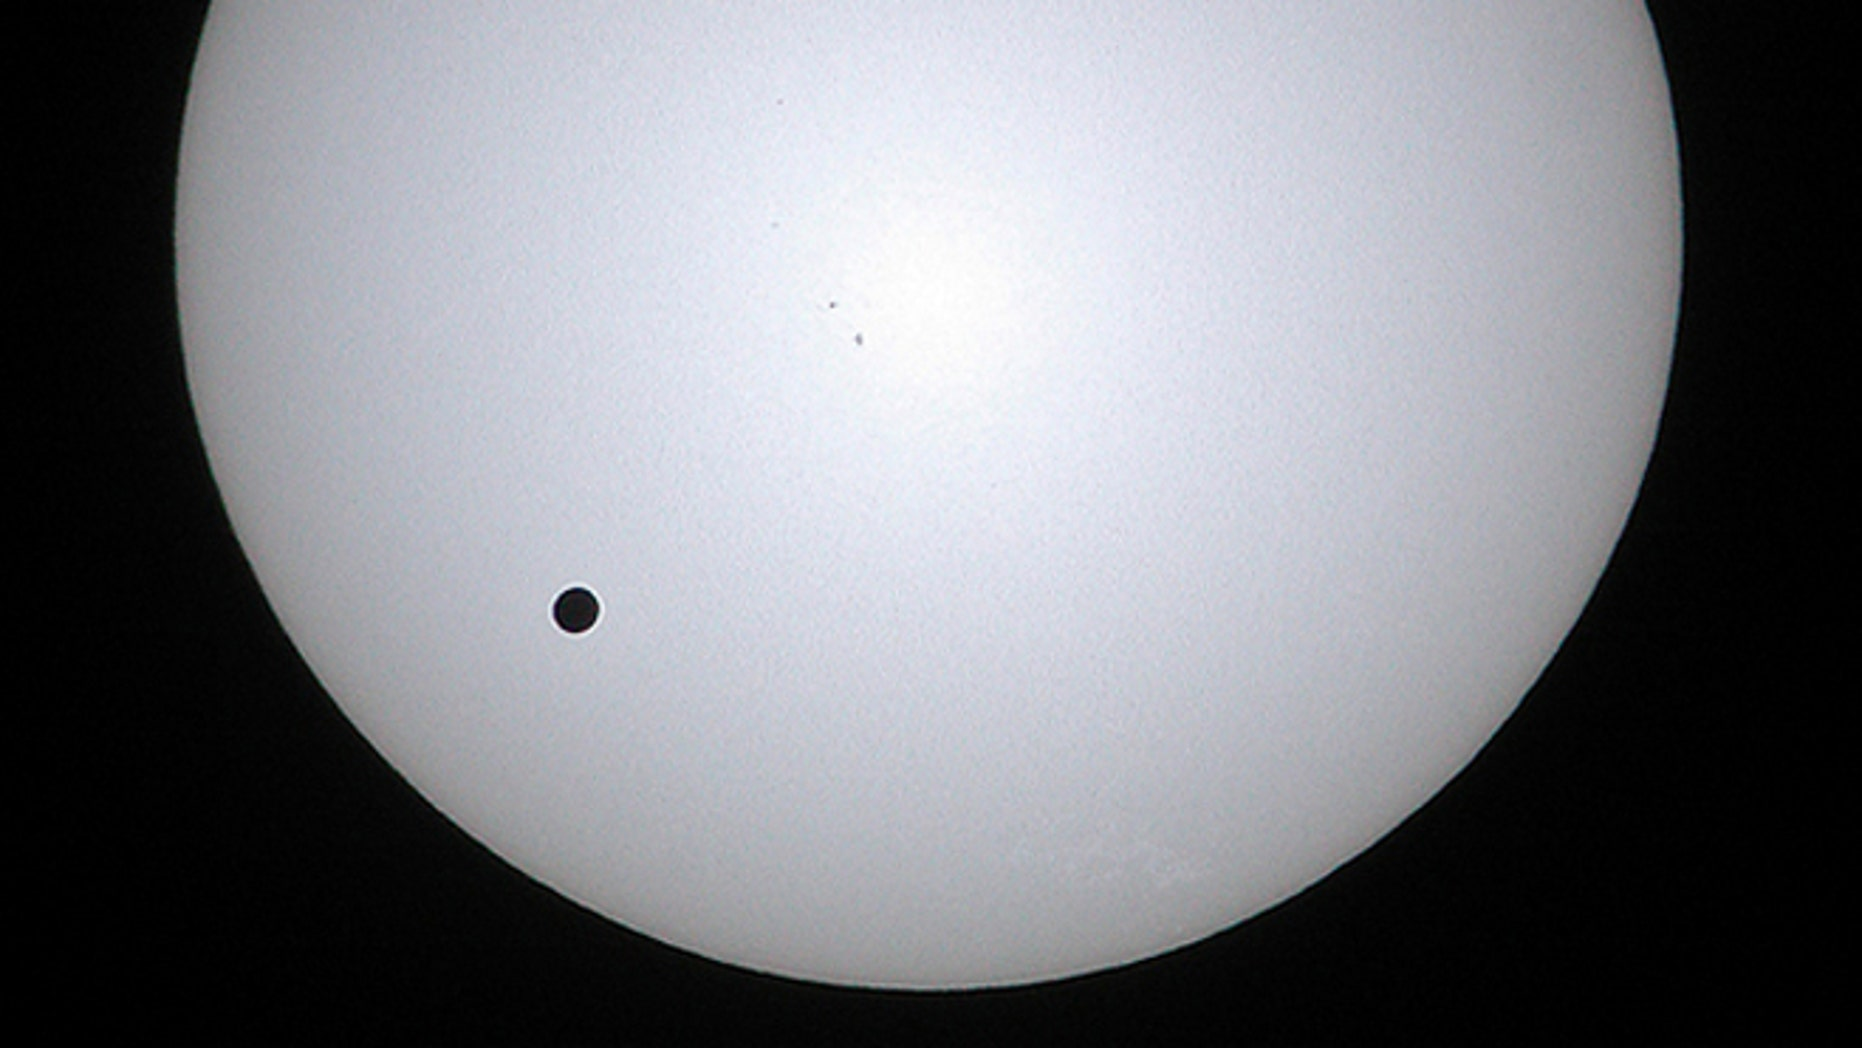 Watching the tiny silhouette of the planet Venus slowly cross the face of the sun doesnt evoke the same drama and excitement as experiencing a total solar eclipse, but what makes a transit so unique is its rarity and historical significance.